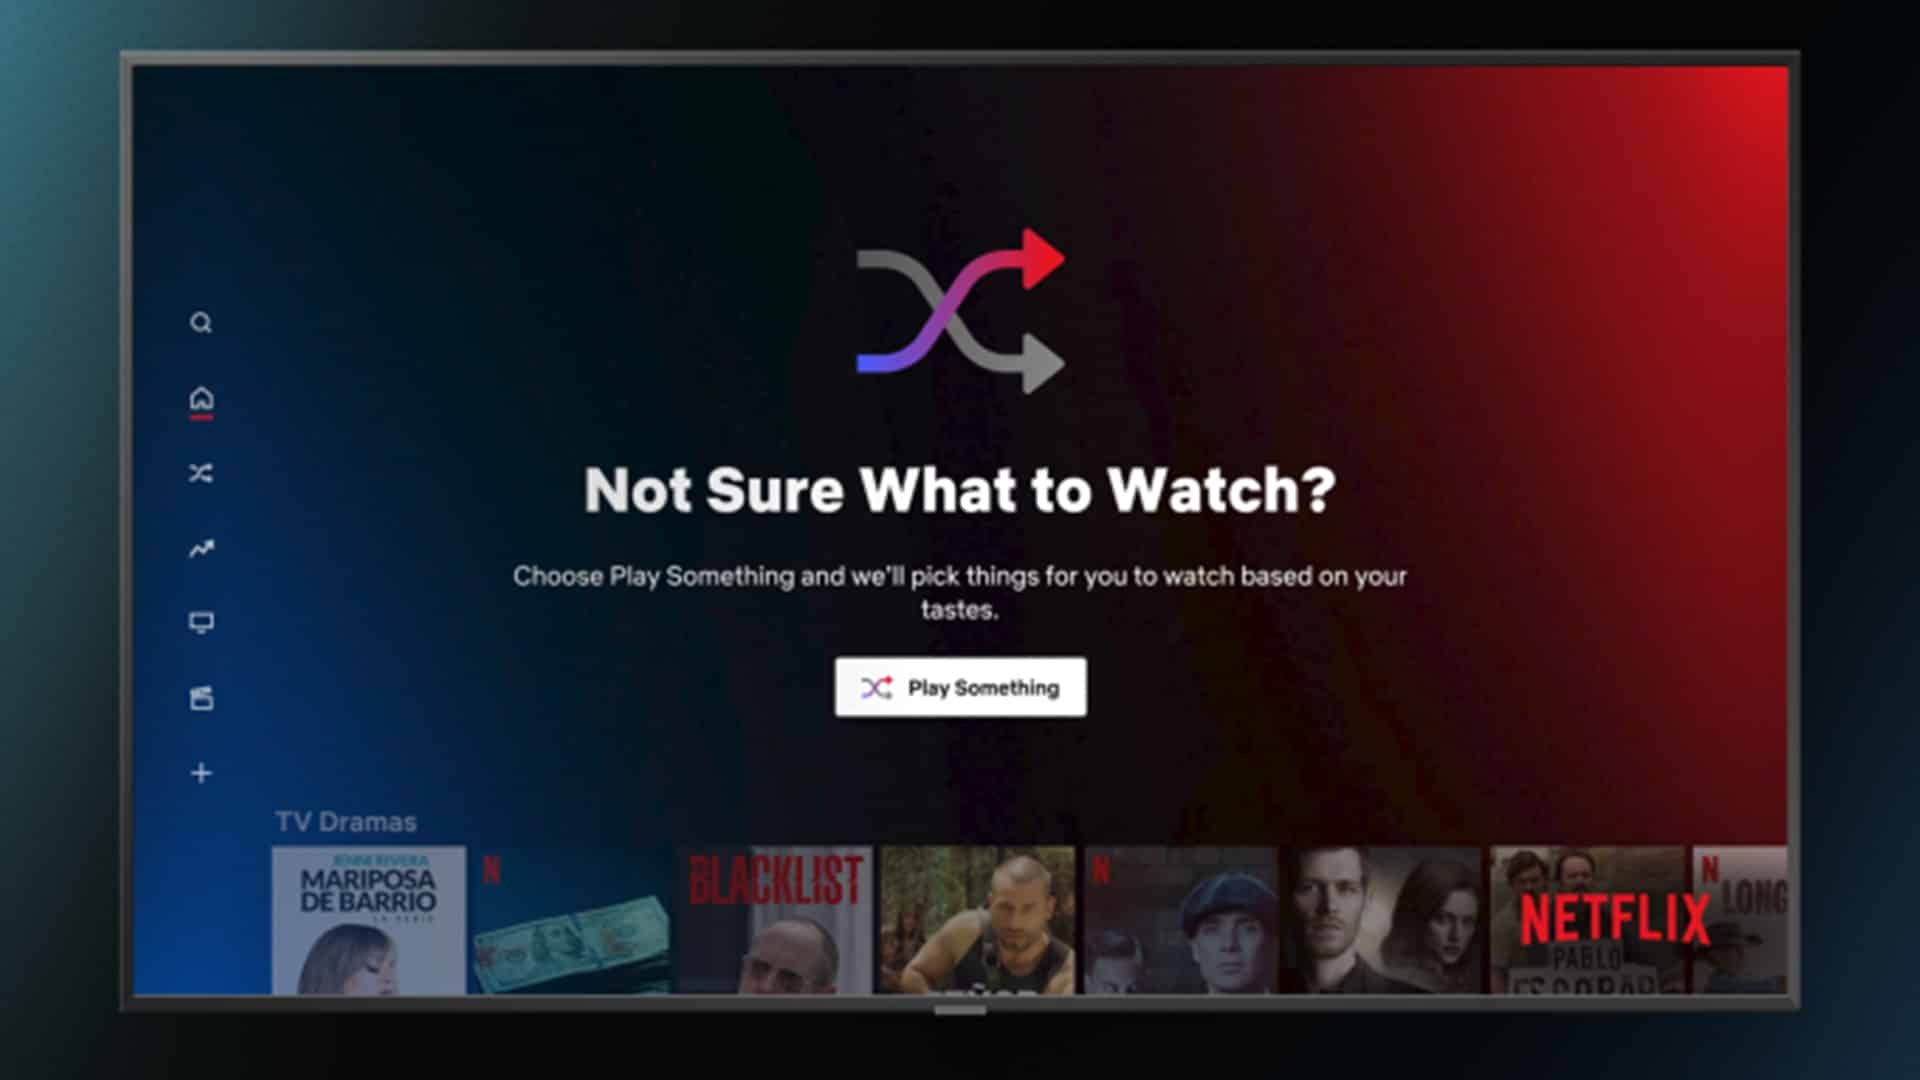 Netflix's new 'Play Something' shuffle feature is here to solve your movie night indecision